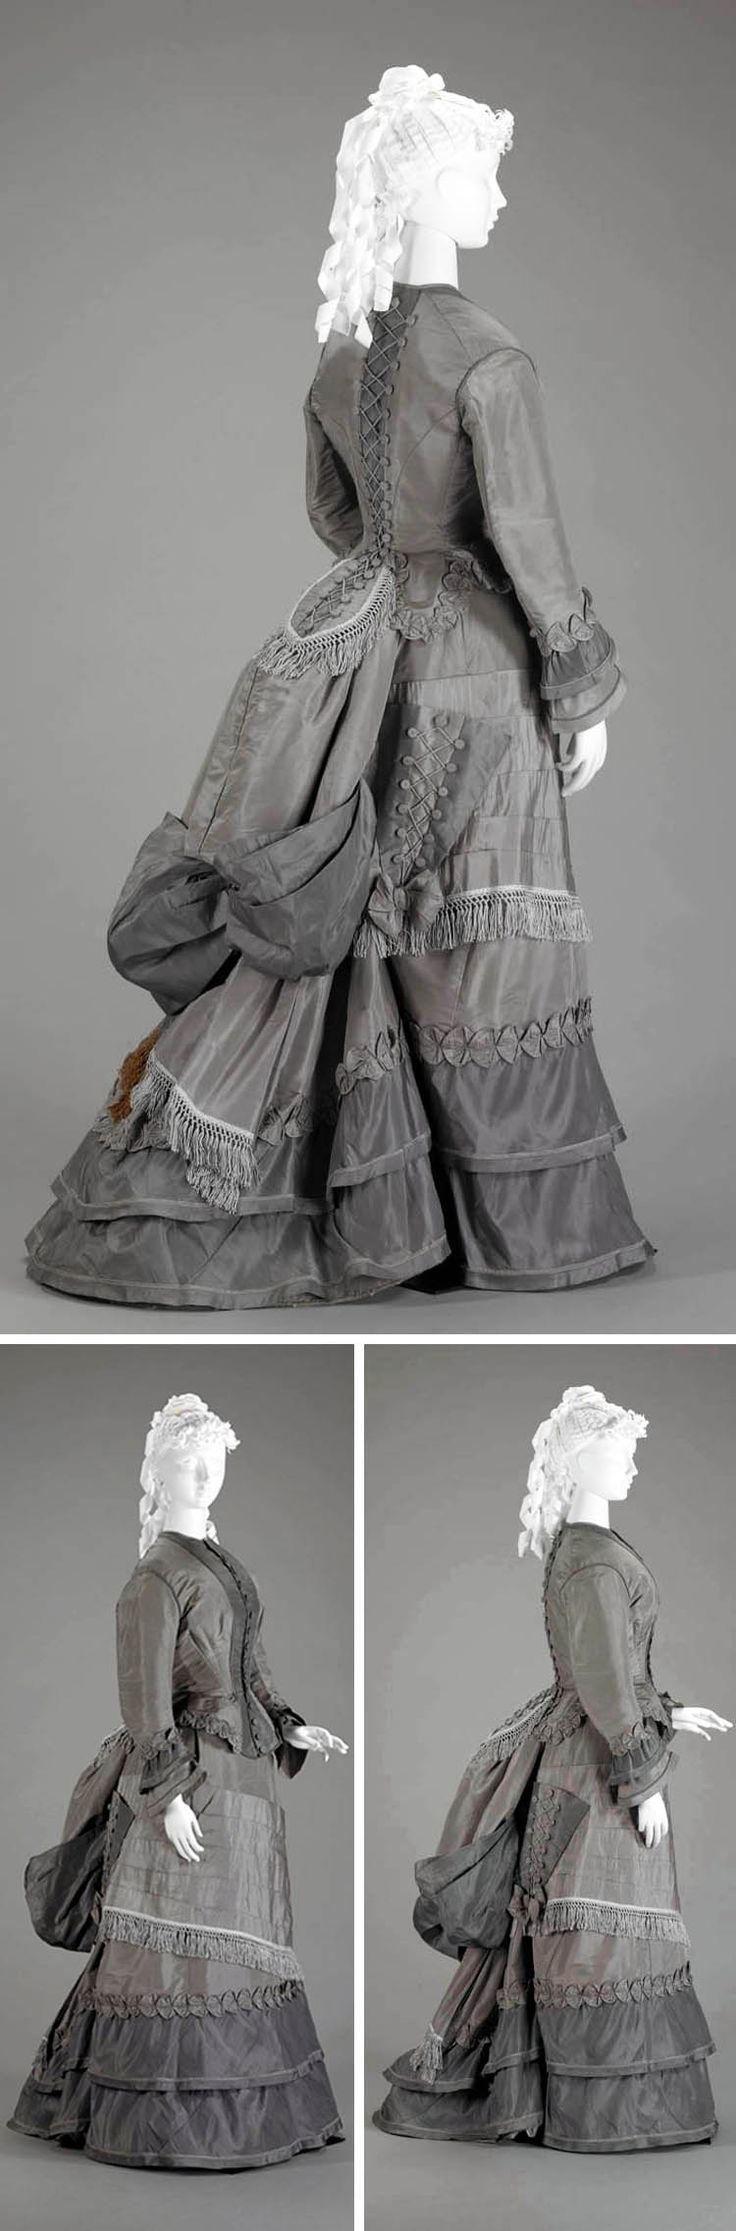 Walking suit ca. 1870s. Two-piece visiting dress in 2 shades of gray silk faille. Skirt has short train and is worn with bustle. Triangular pocket on right side of skirt, trimmed with buttons & cord lacing, was designed to hold parasol. Indianapolis Museum of Art